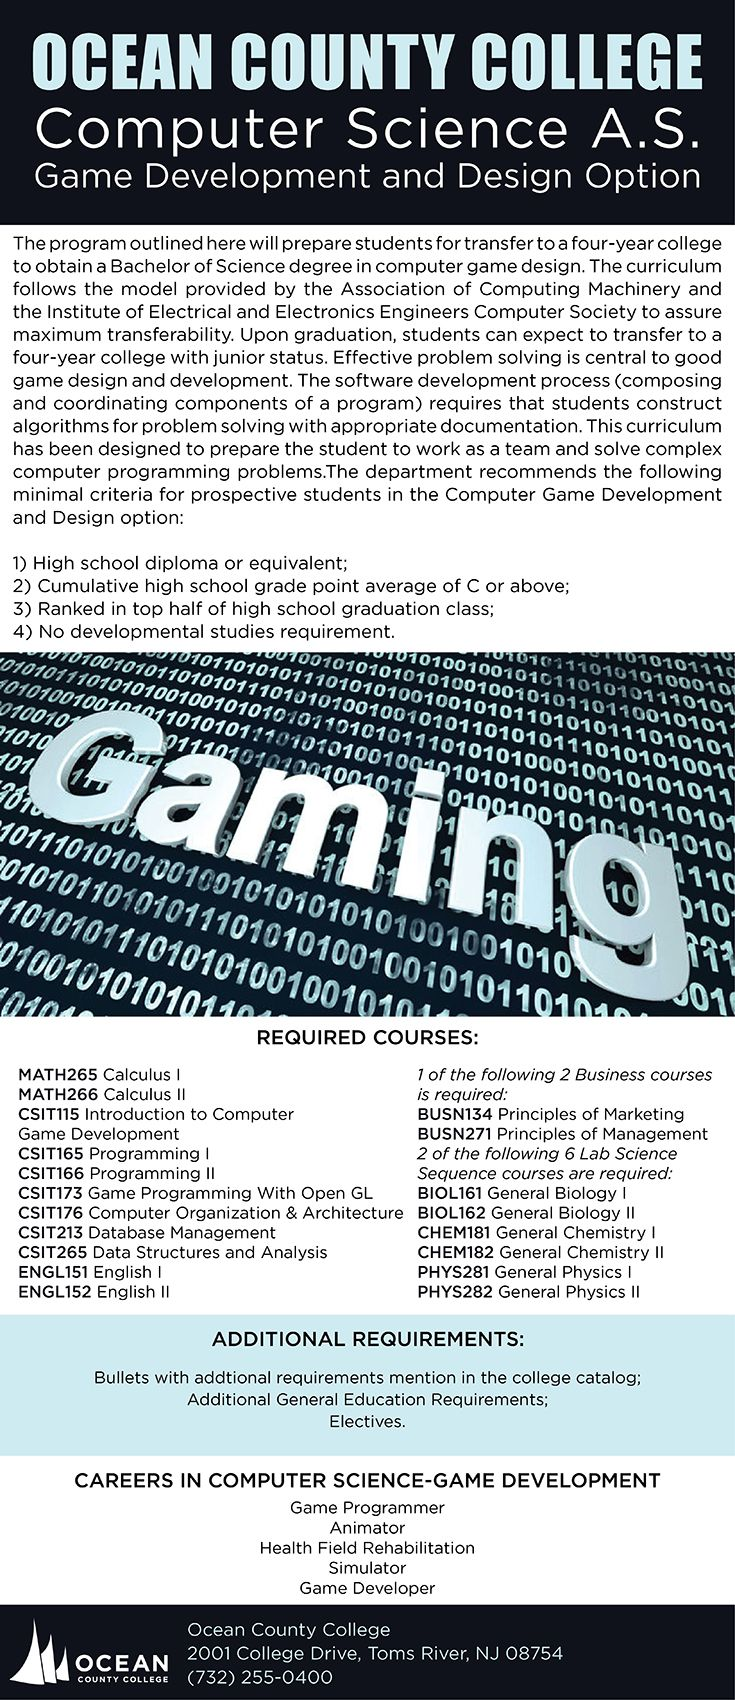 Computer Science A.S. Game Development and Design Option